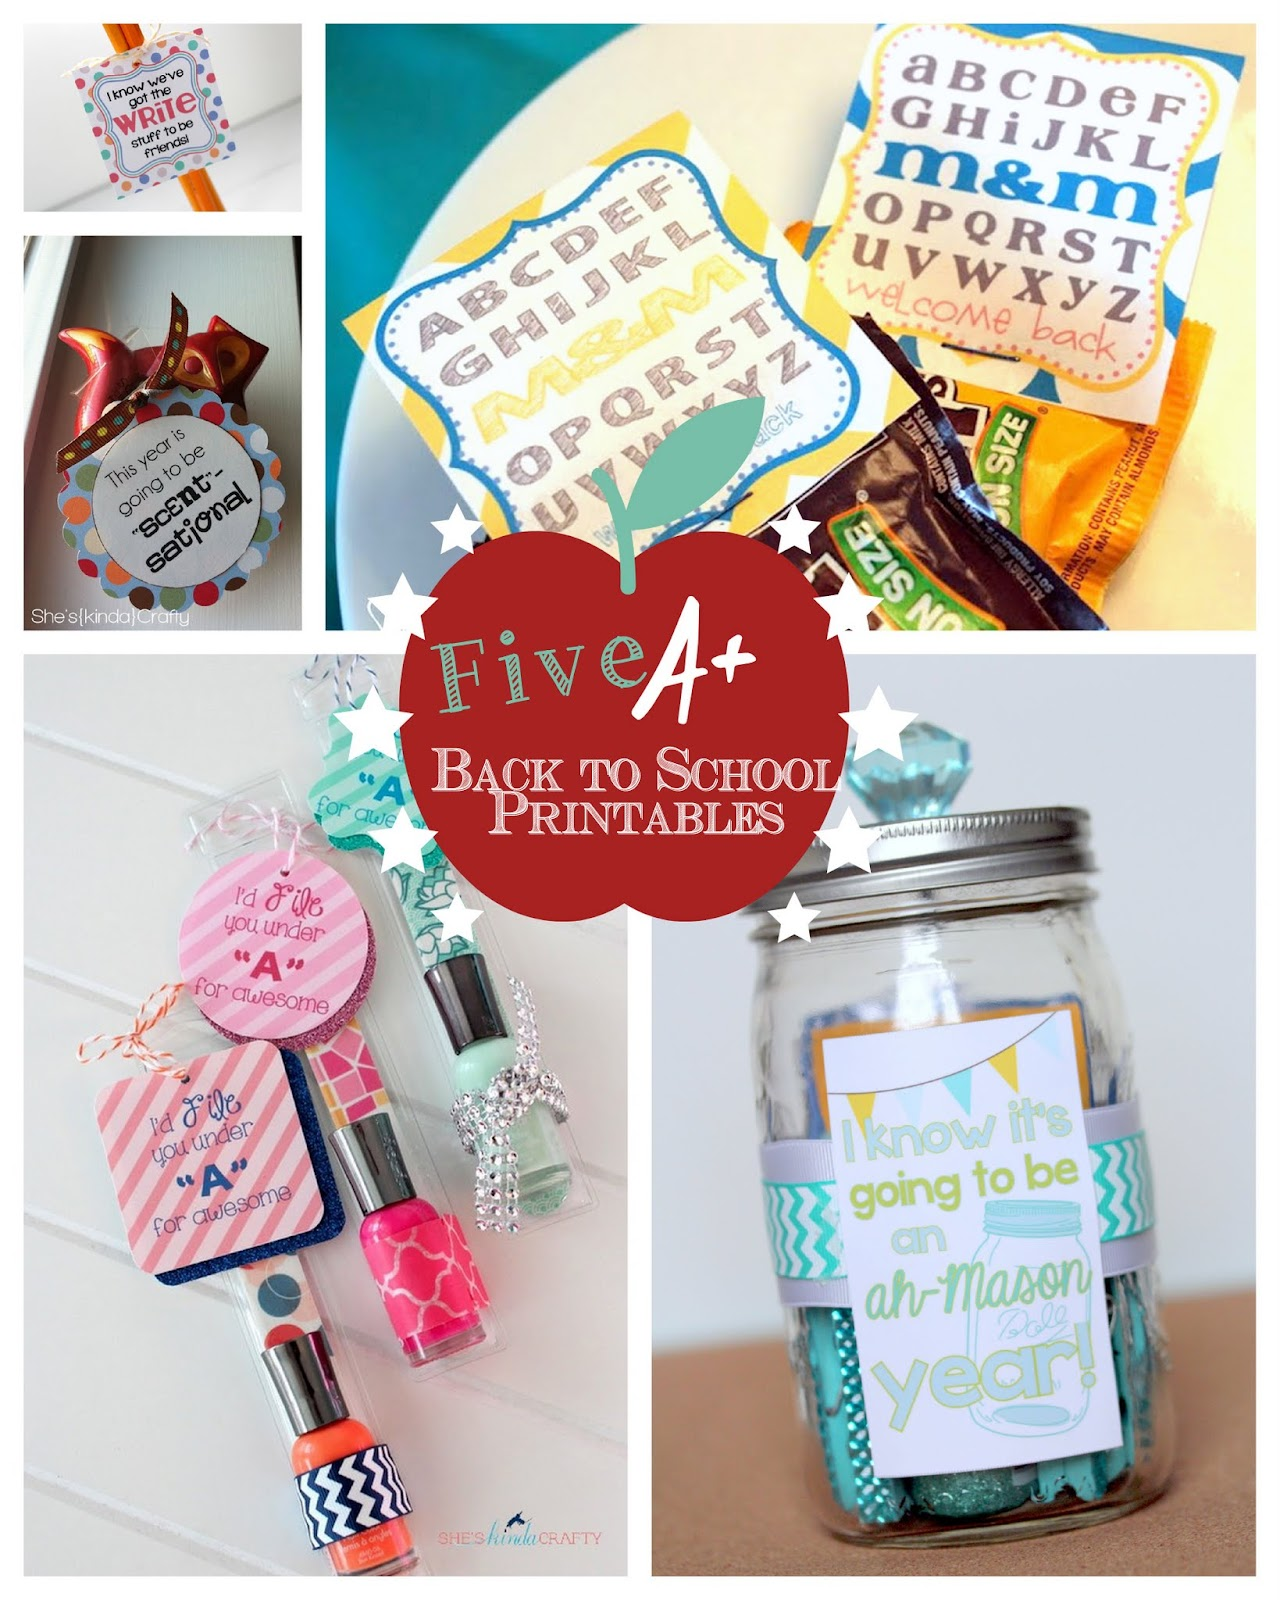 photograph regarding Welcome to Our Open House Printable named Again towards College or university Totally free Printables - Shes kinda Cunning